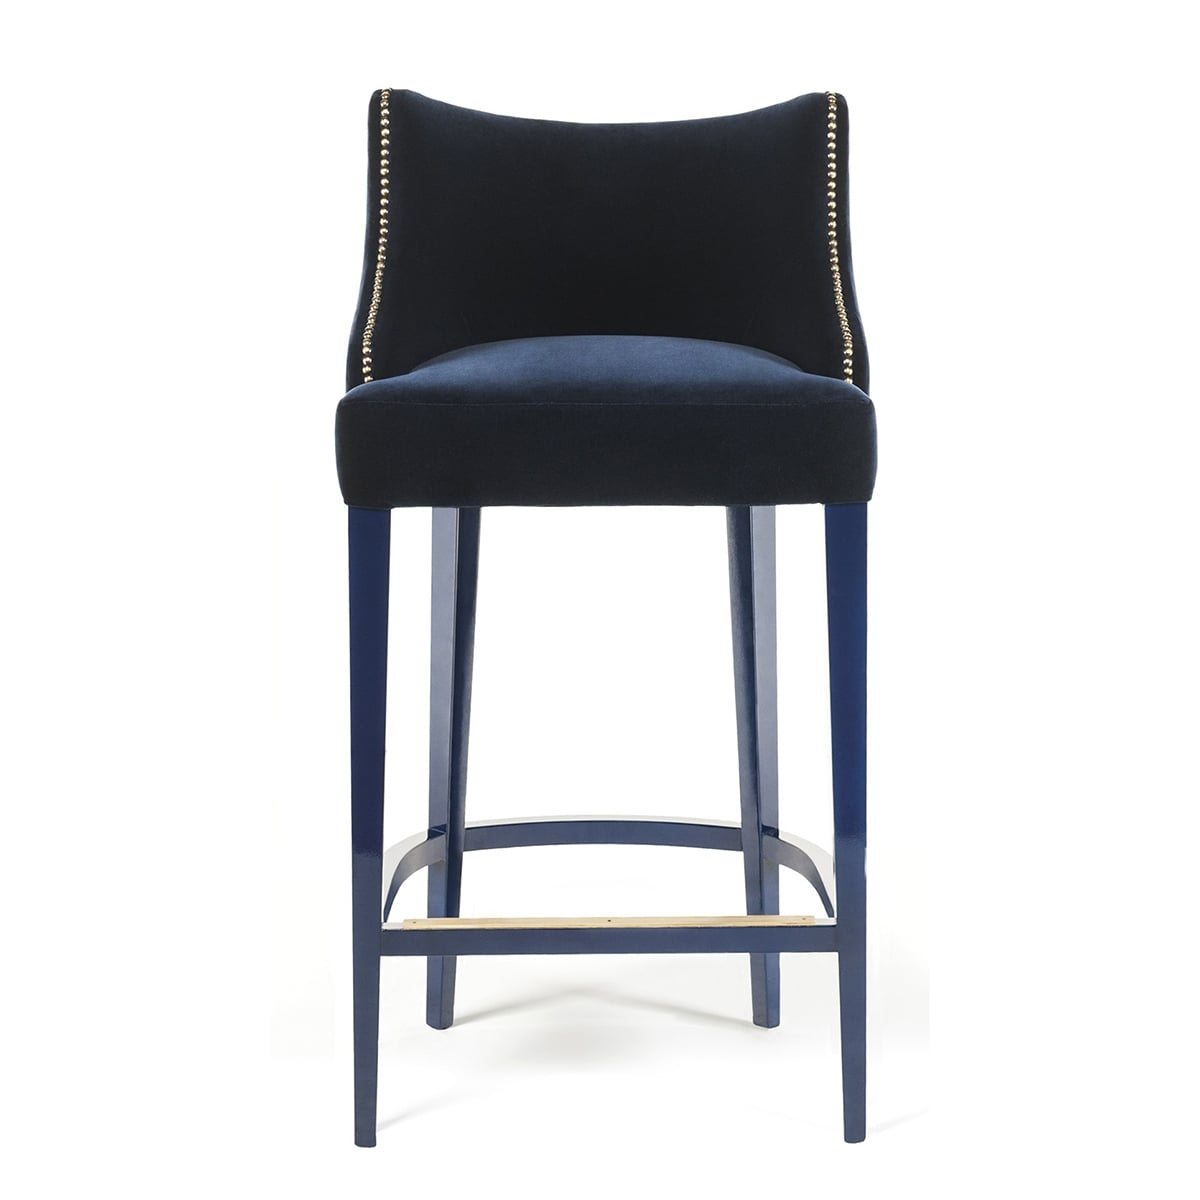 Living Room Stools Uk Designer Bar Stool Velvet Becomes Me Swanky Interiors